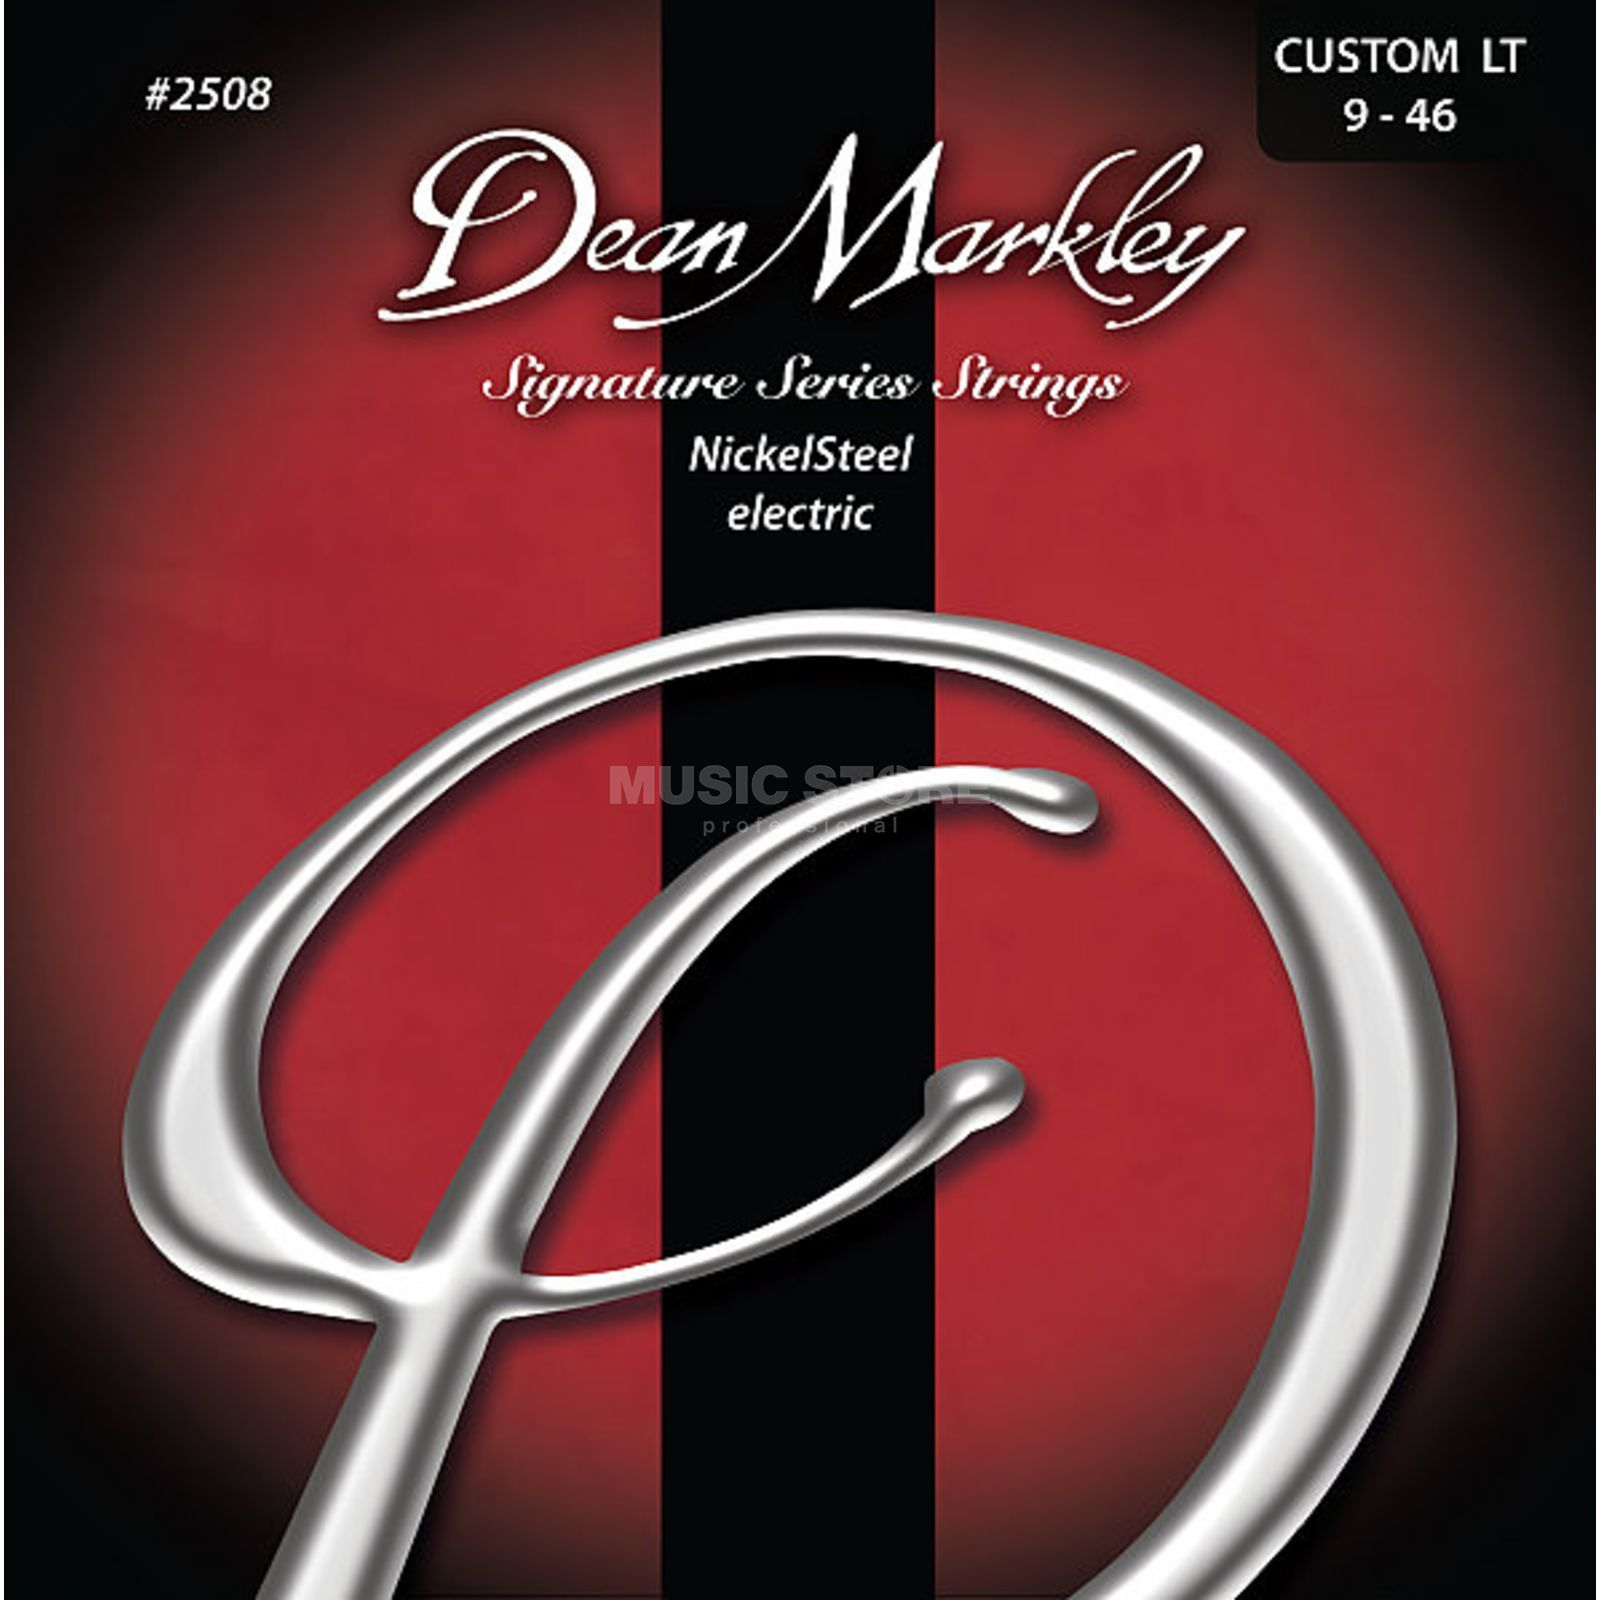 Dean Markley E-Guit. Strings 09-46 2508B CL Nickel Steel Produktbillede